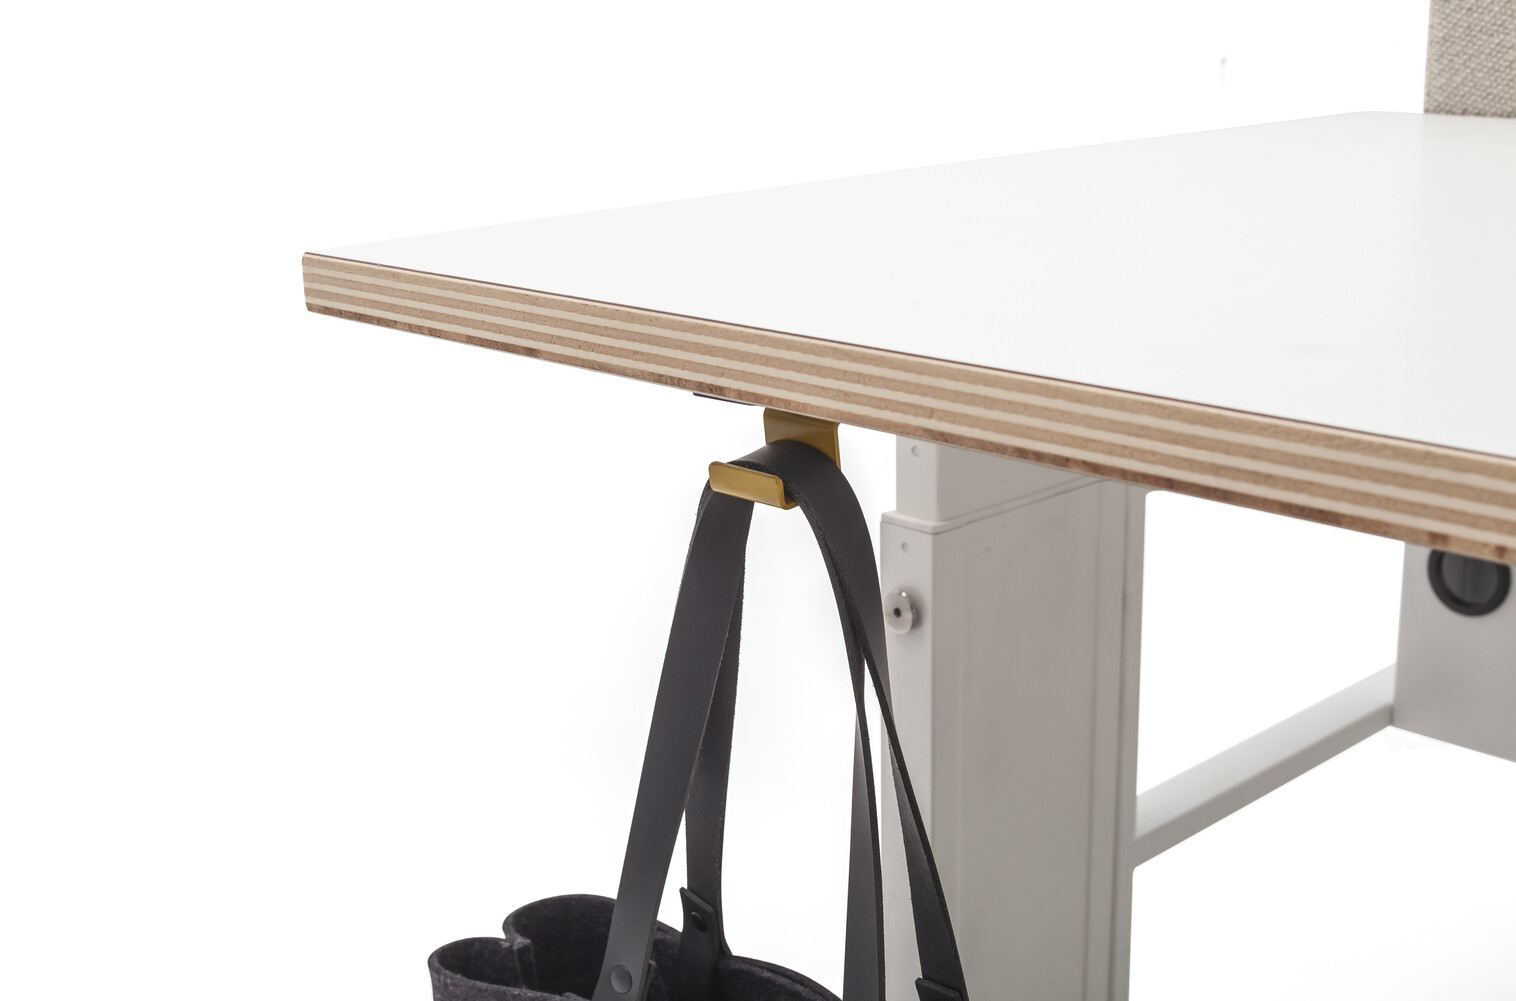 Gispen Cimo dual table with white frame with white plywood tabletops and grey upholstered screen straight rounded thick with baghook and bag front right detail view